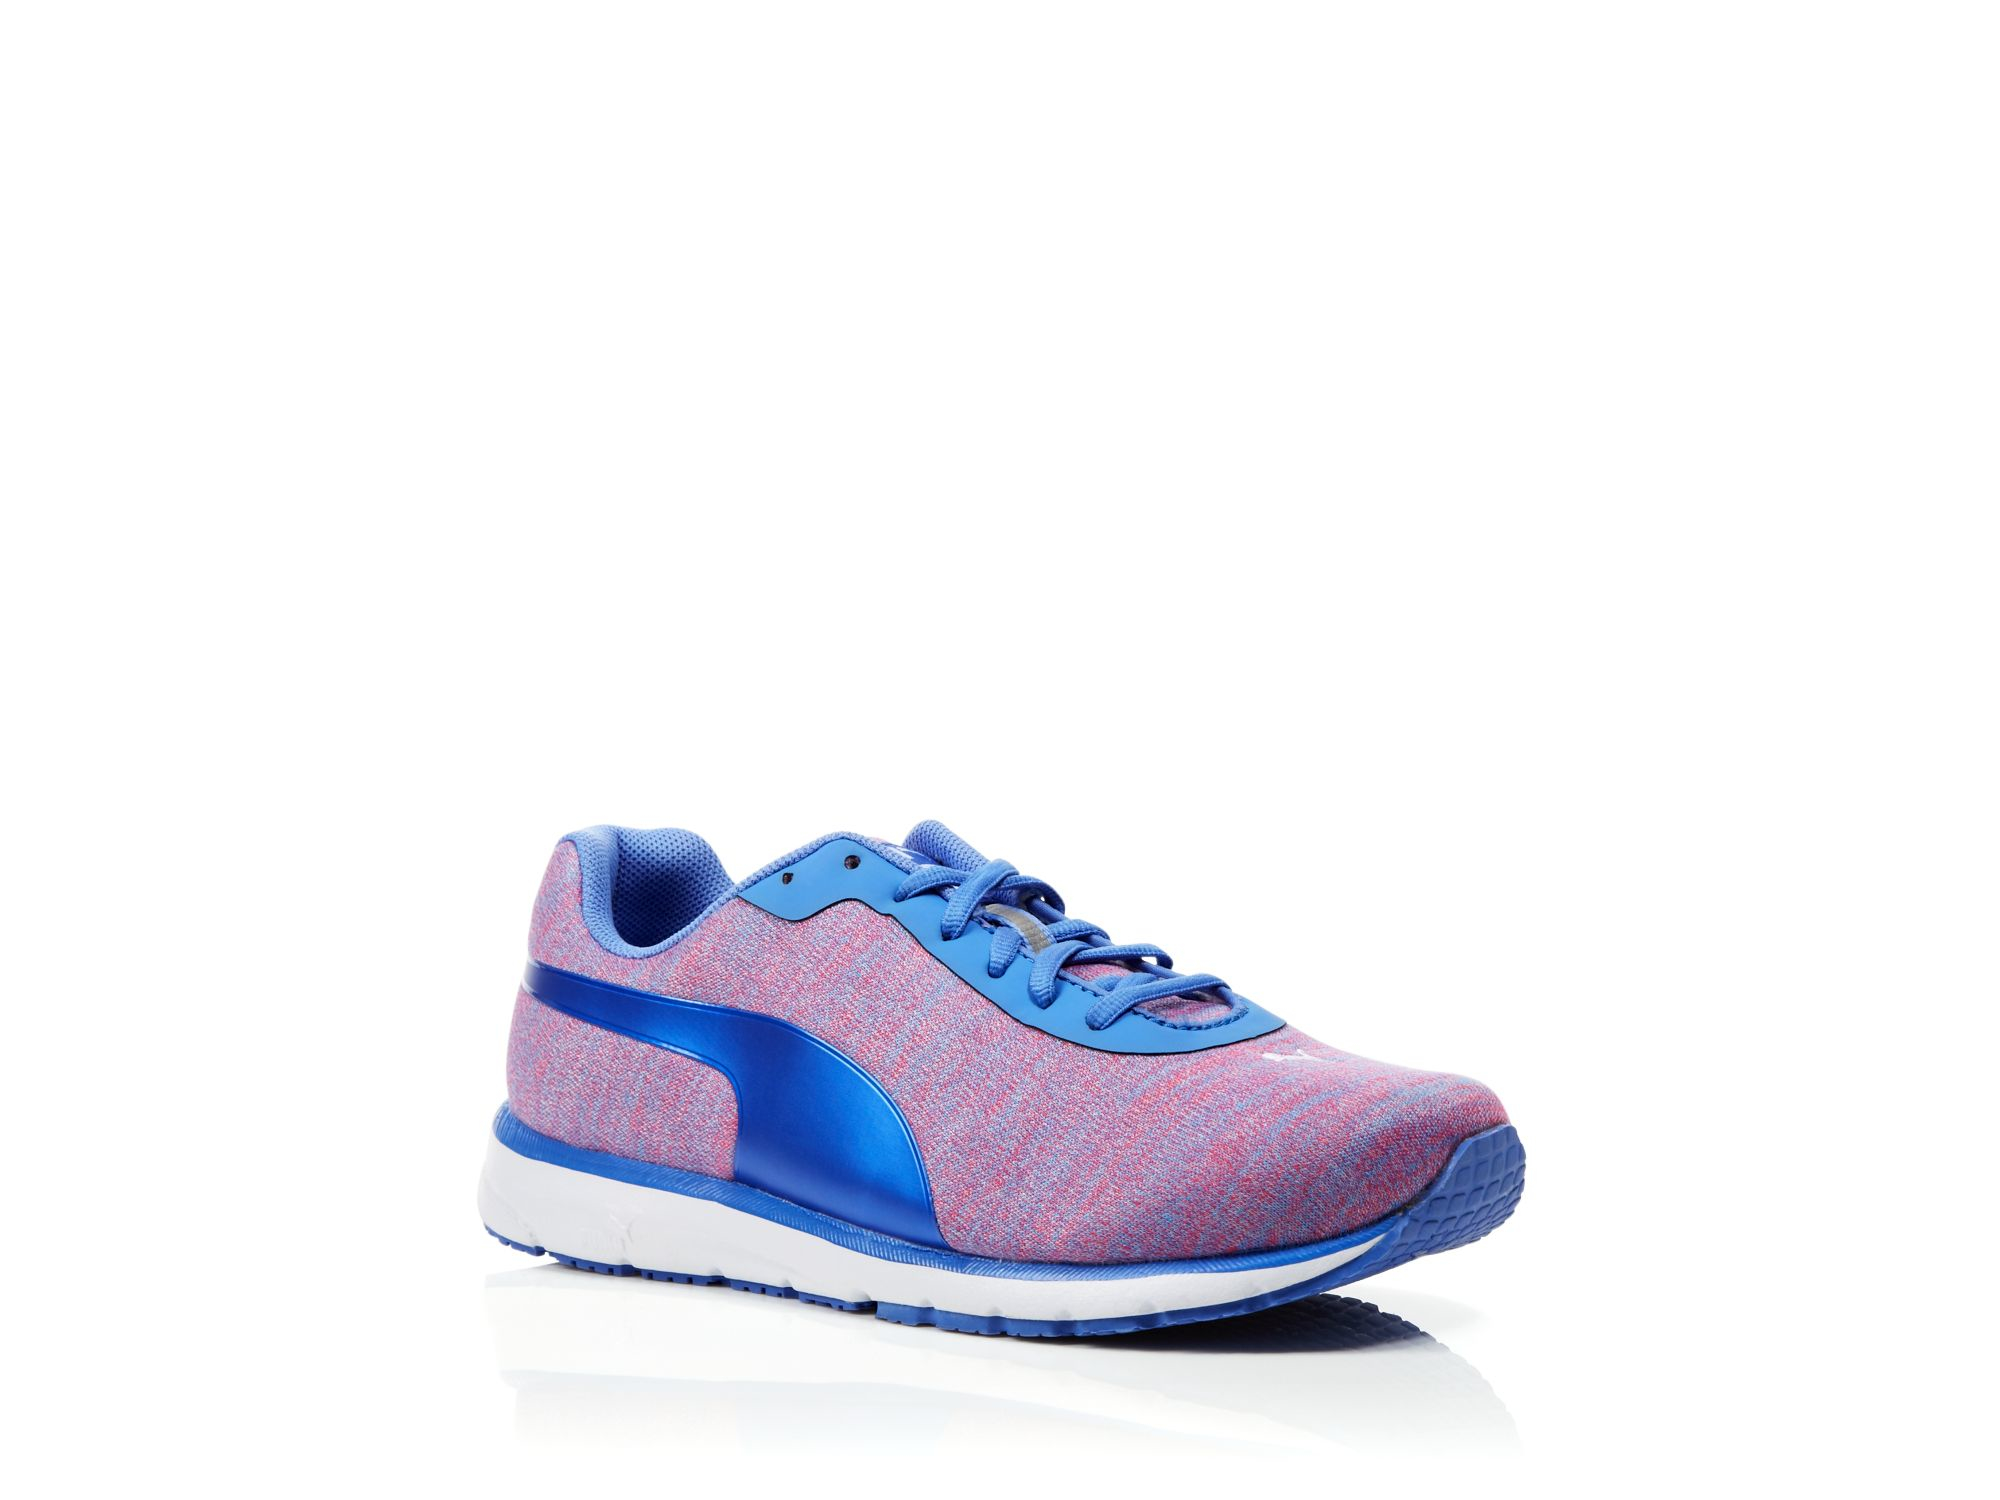 Lyst PUMA Lace Up Sneakers Narita V3 Heathered in Blue